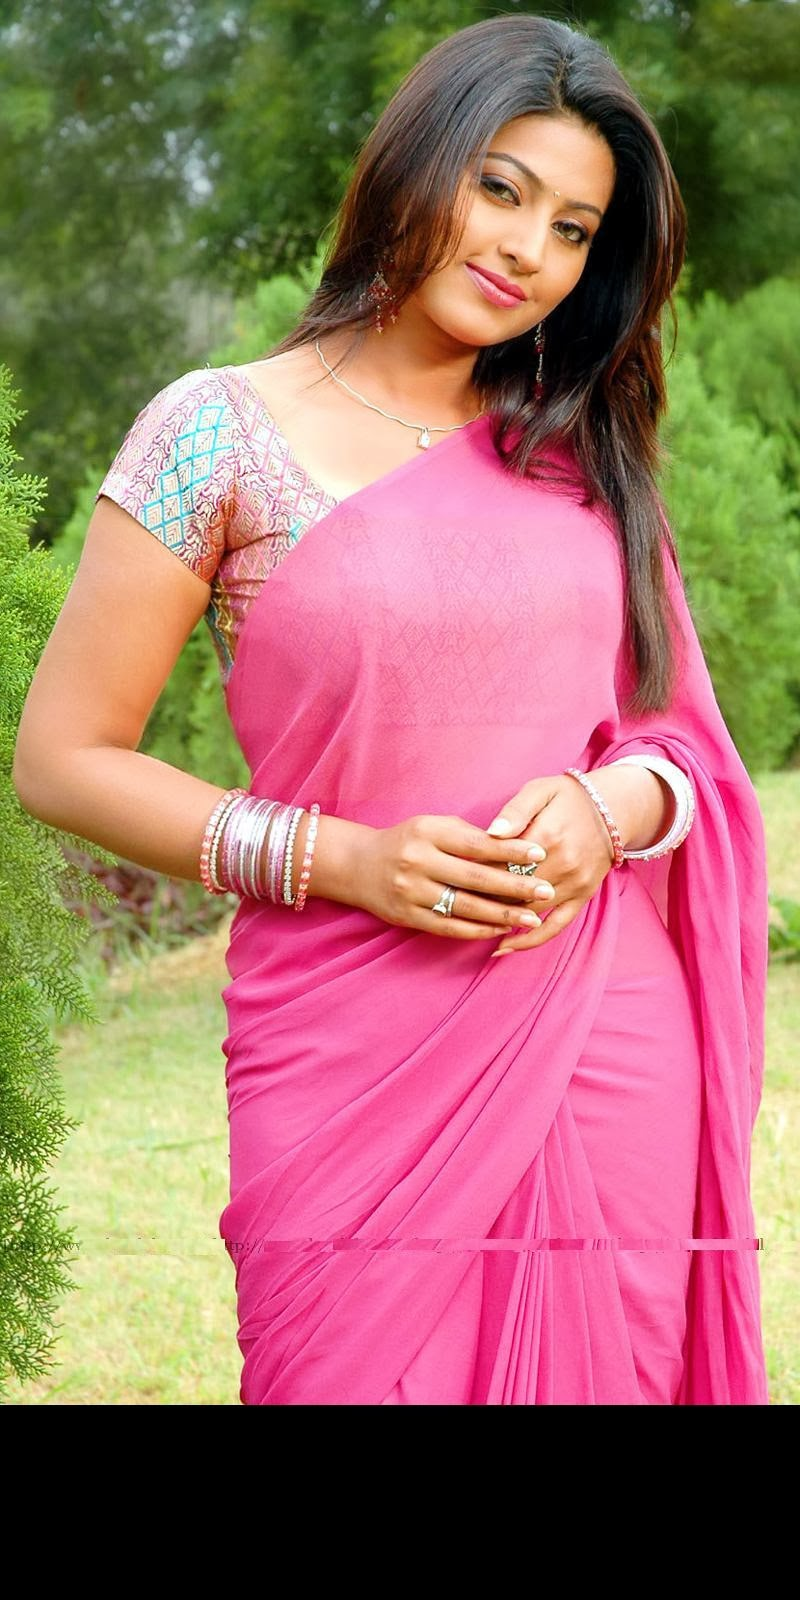 tamil kamakathaikal 2014 latest with image tamil actress